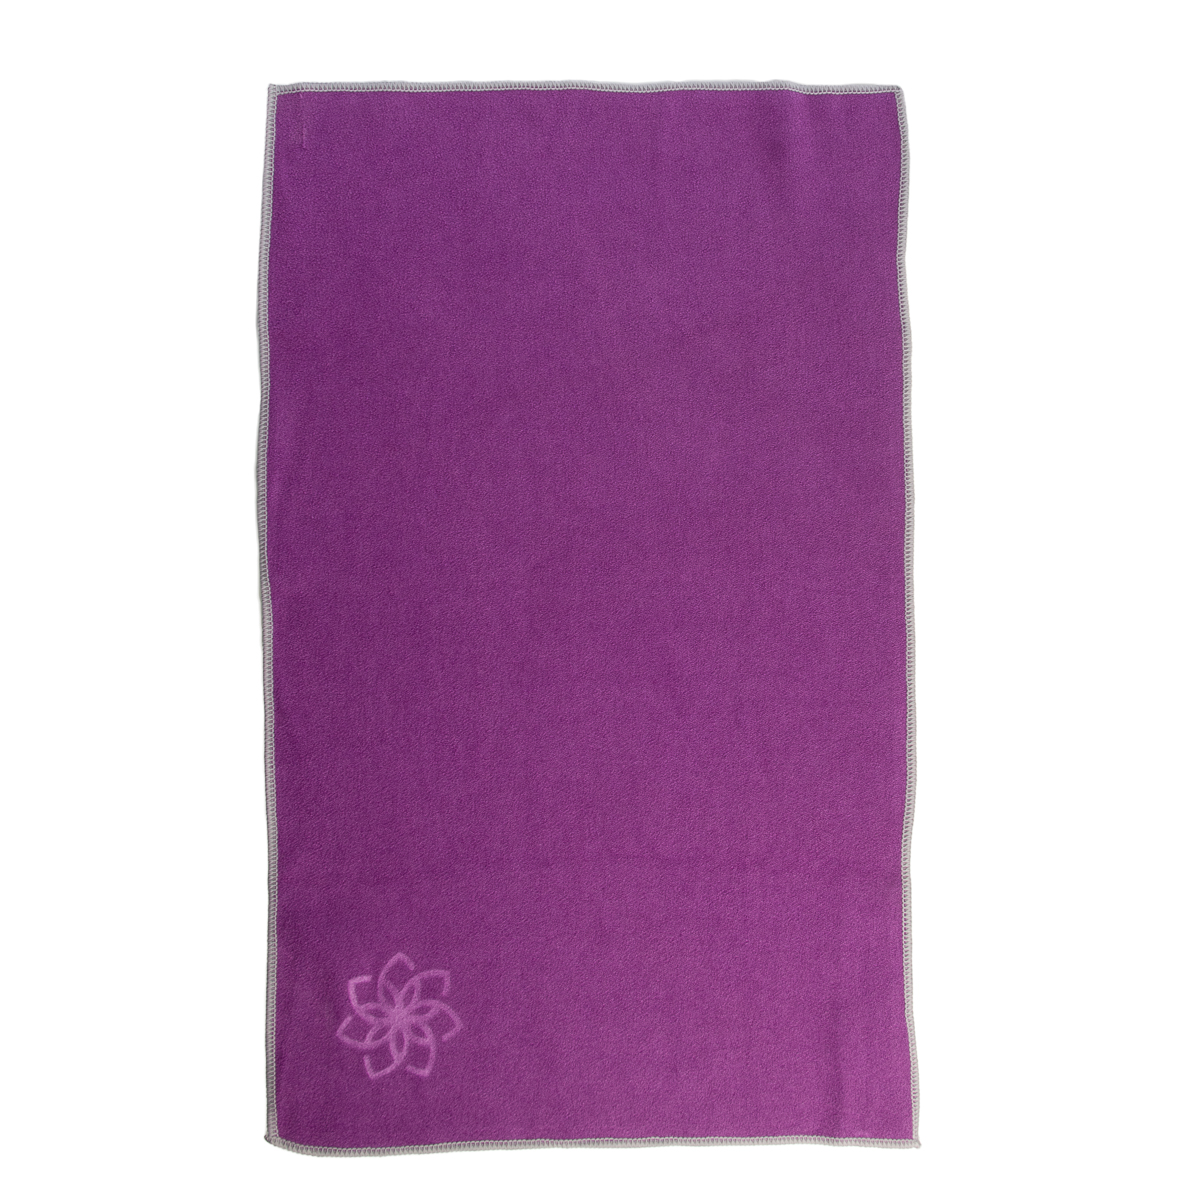 Super Soft Mettadali Yoga Hand Towel Purple 15 x 24 - Non Slip Resistant /& Sweat Activated Gripping Microfiber Absorbent /& Fast Drying Towel Absorbent /& Fast Drying